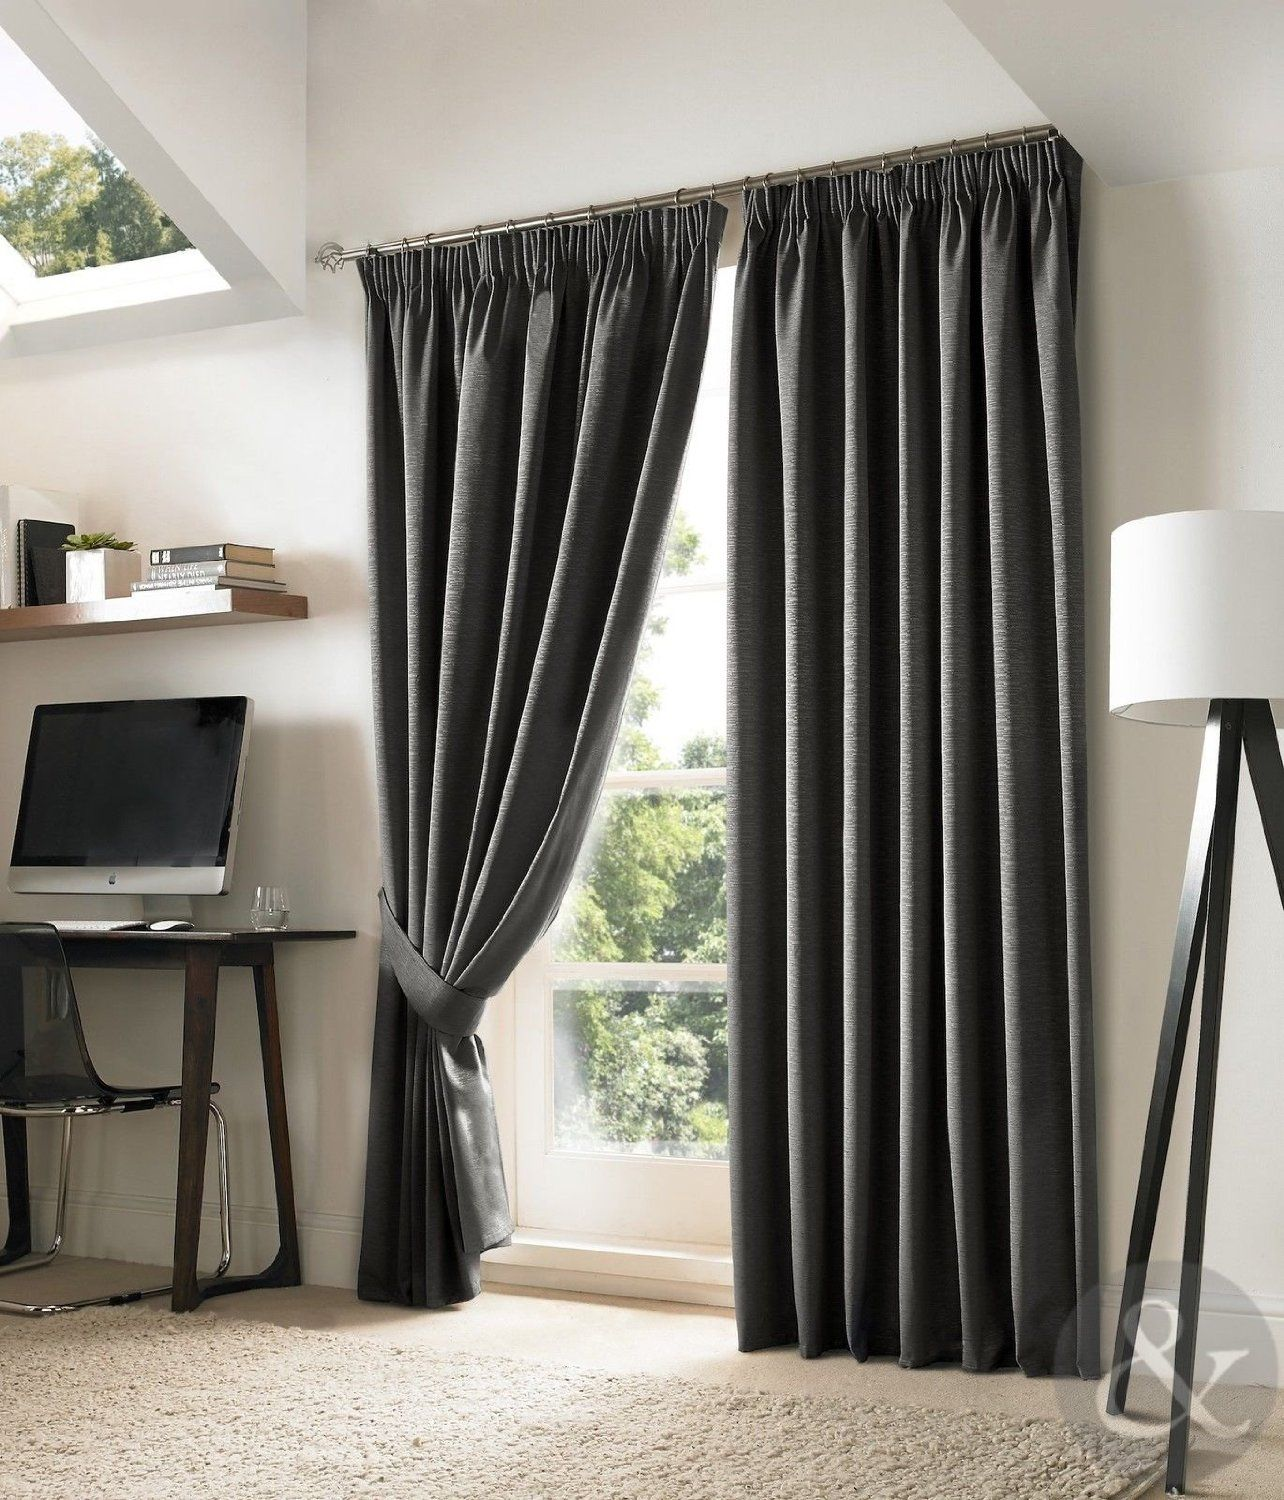 Kitchen Curtains Amazon Co Uk: Luxury Fully Lined Embroidered